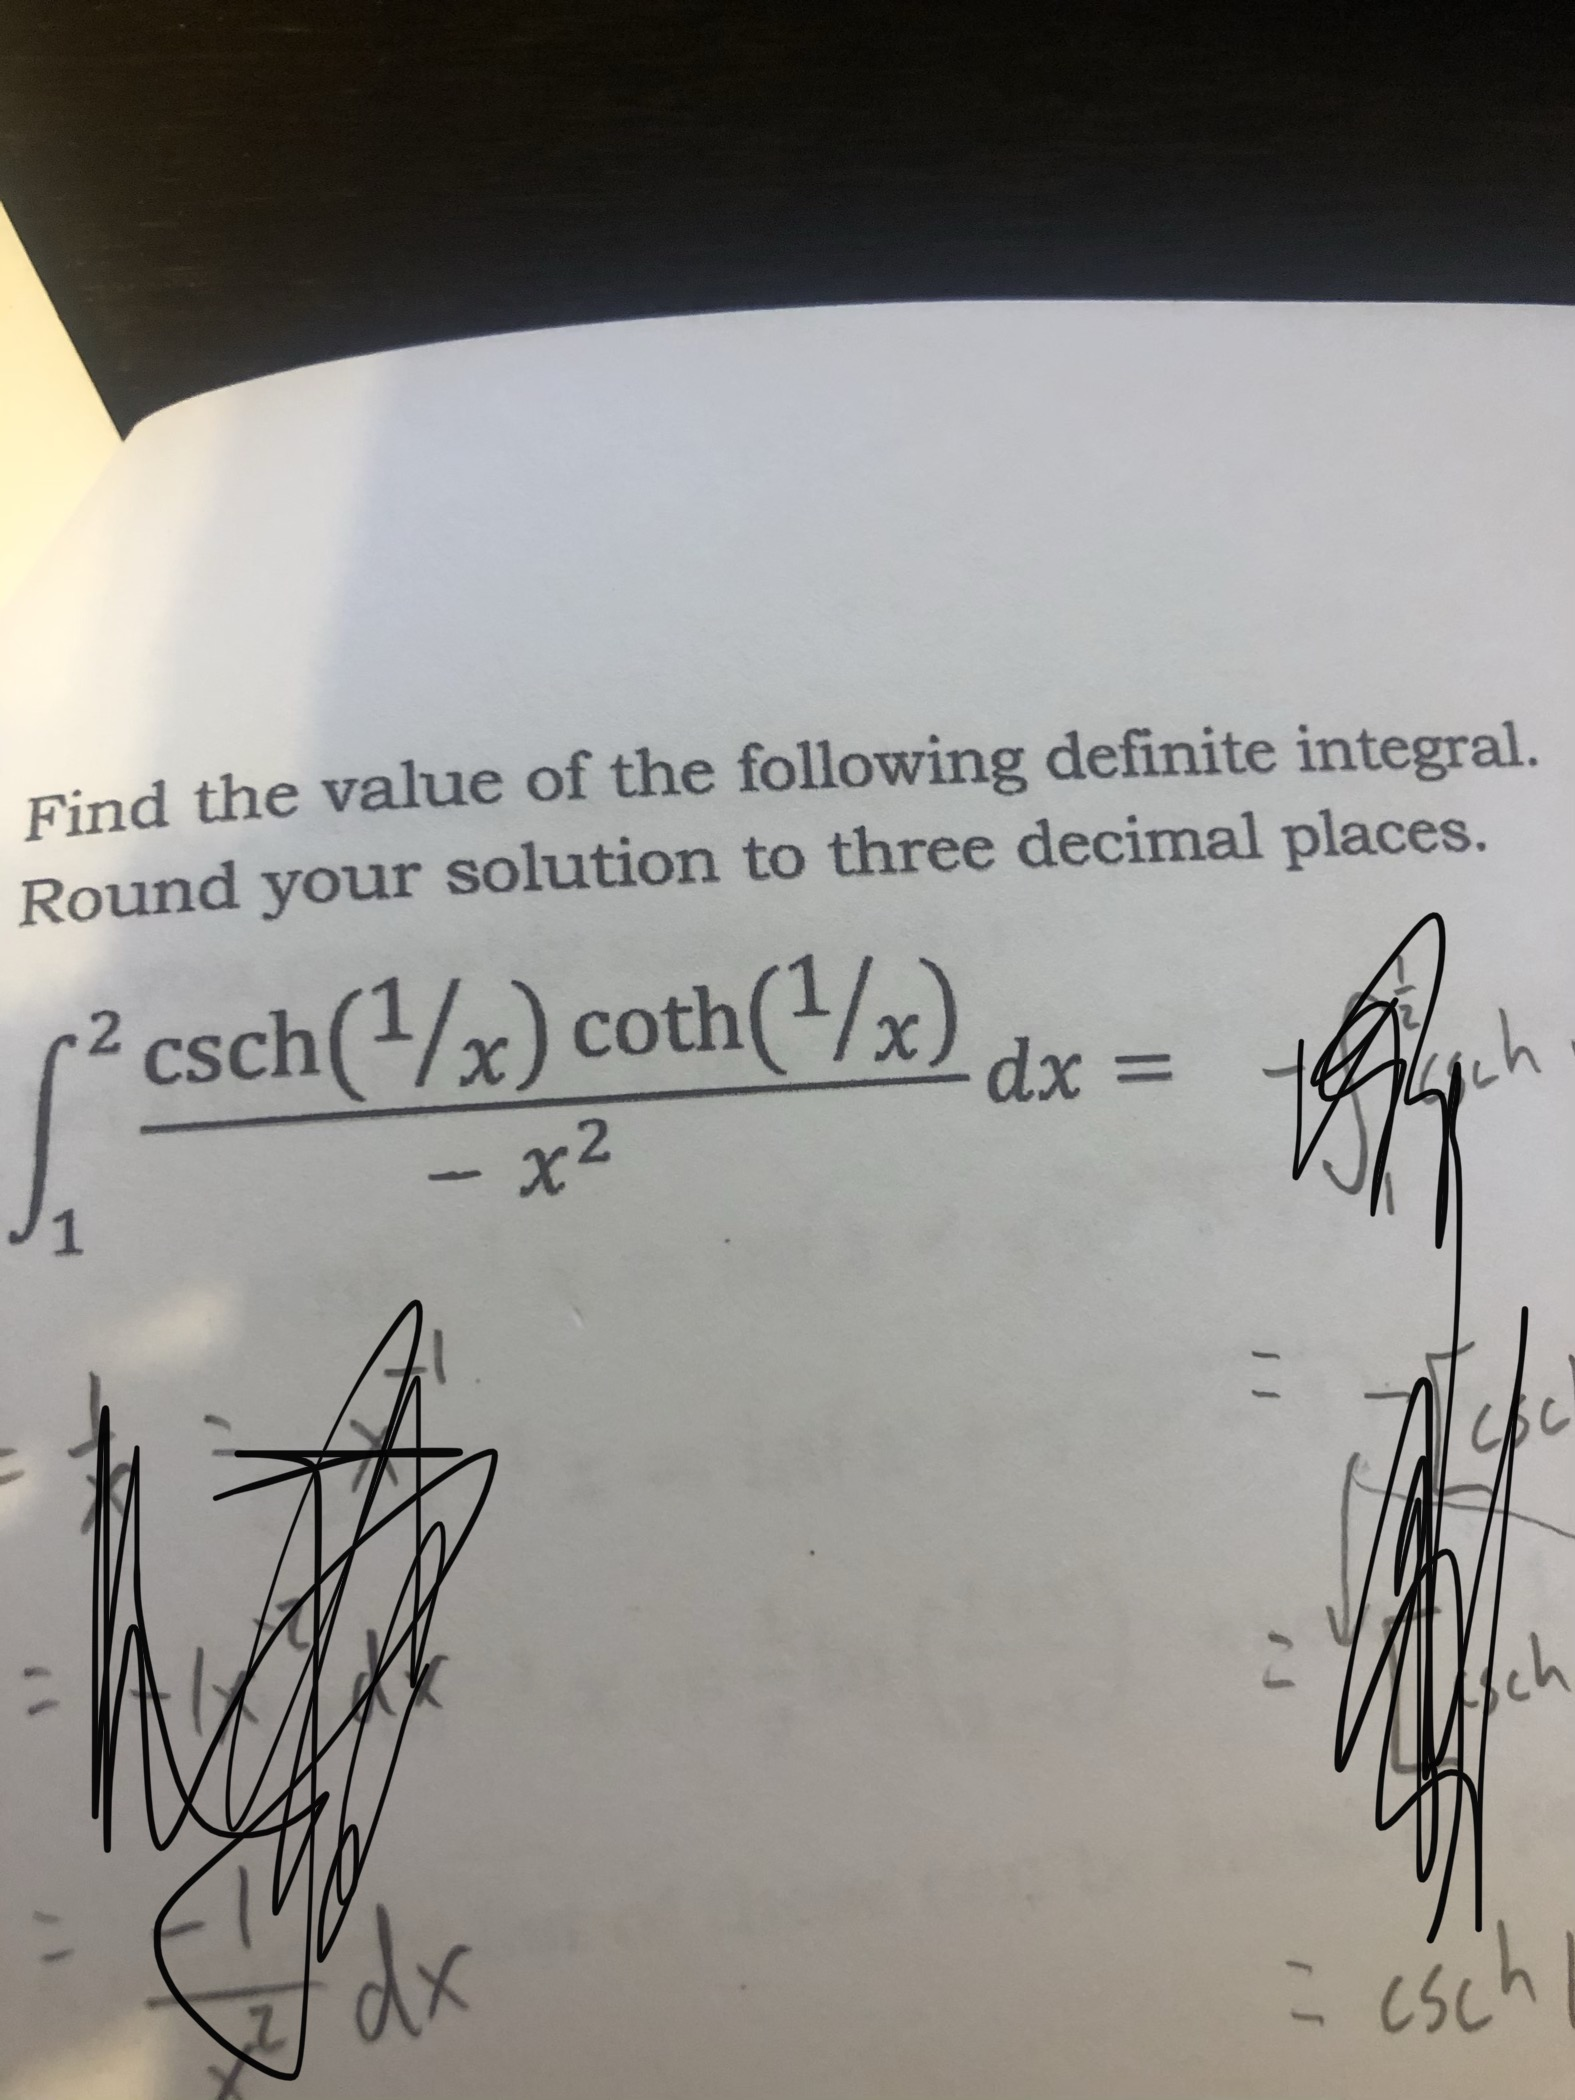 Find the value of the following definite integral Round your solution to three decimal places. -2 csch(/x) coth(/x) dx = ich %3D x2